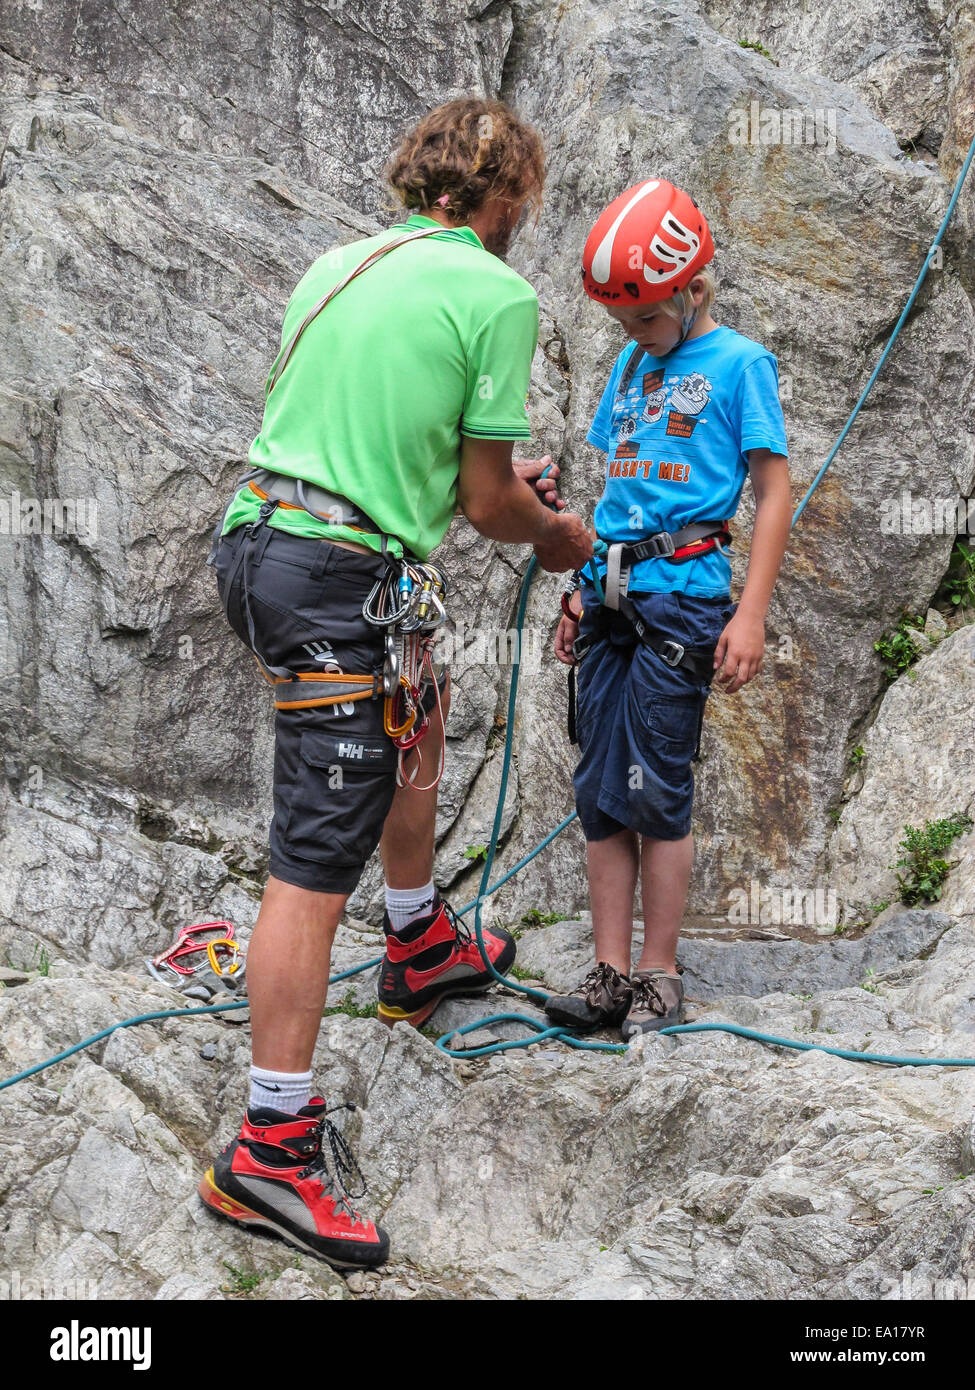 a young boy with his climbing instructor getting ready to climb a EA17YR boy climbing helmet harness stock photos & boy climbing helmet